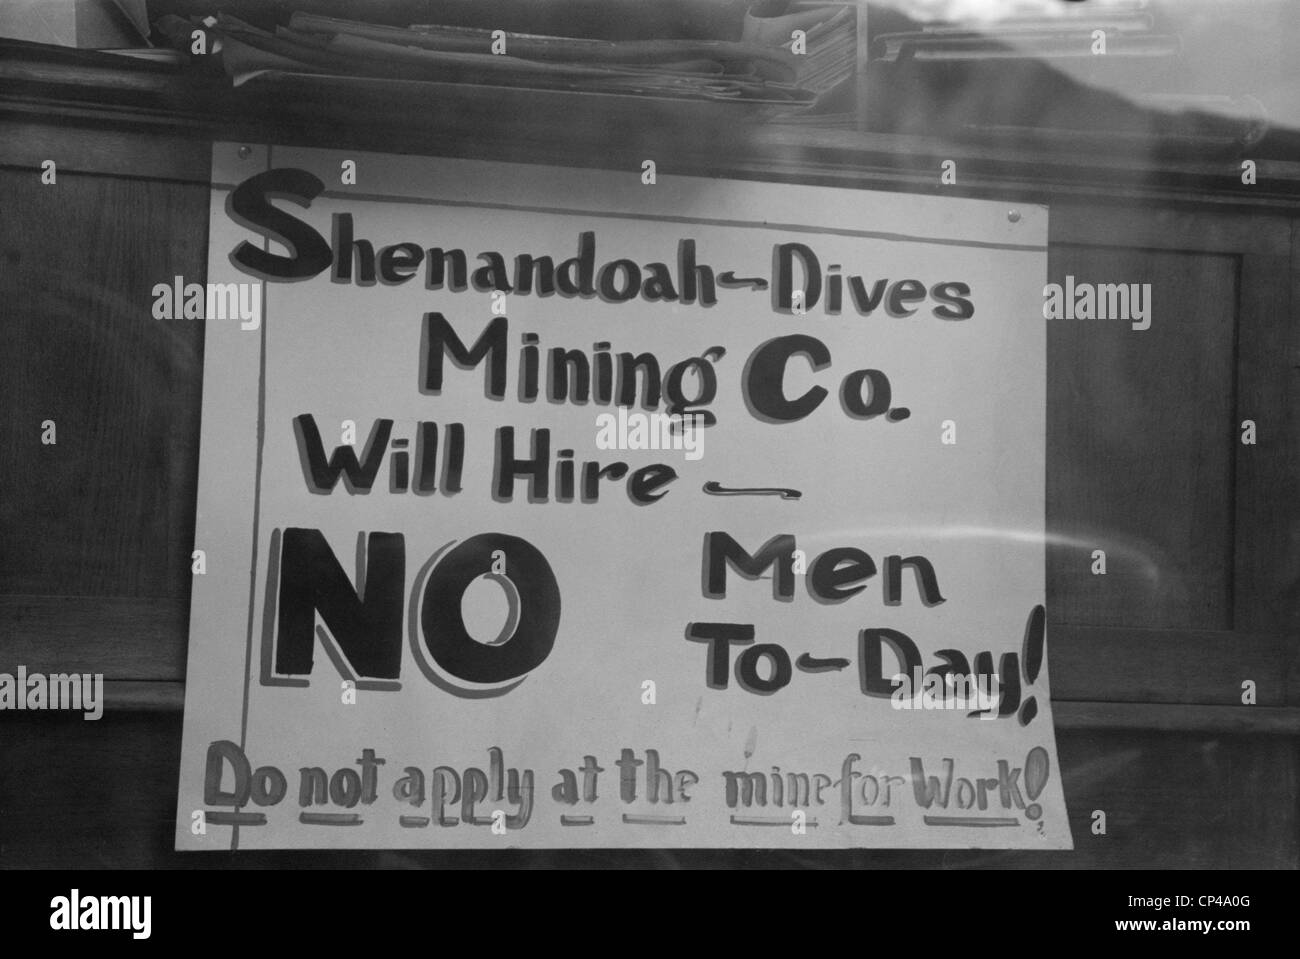 No Jobs Available Sign. 'Shenandoah-Dives Mining Co. Will Hire NO Men To-day Do not apply at the mine for work - Stock Image